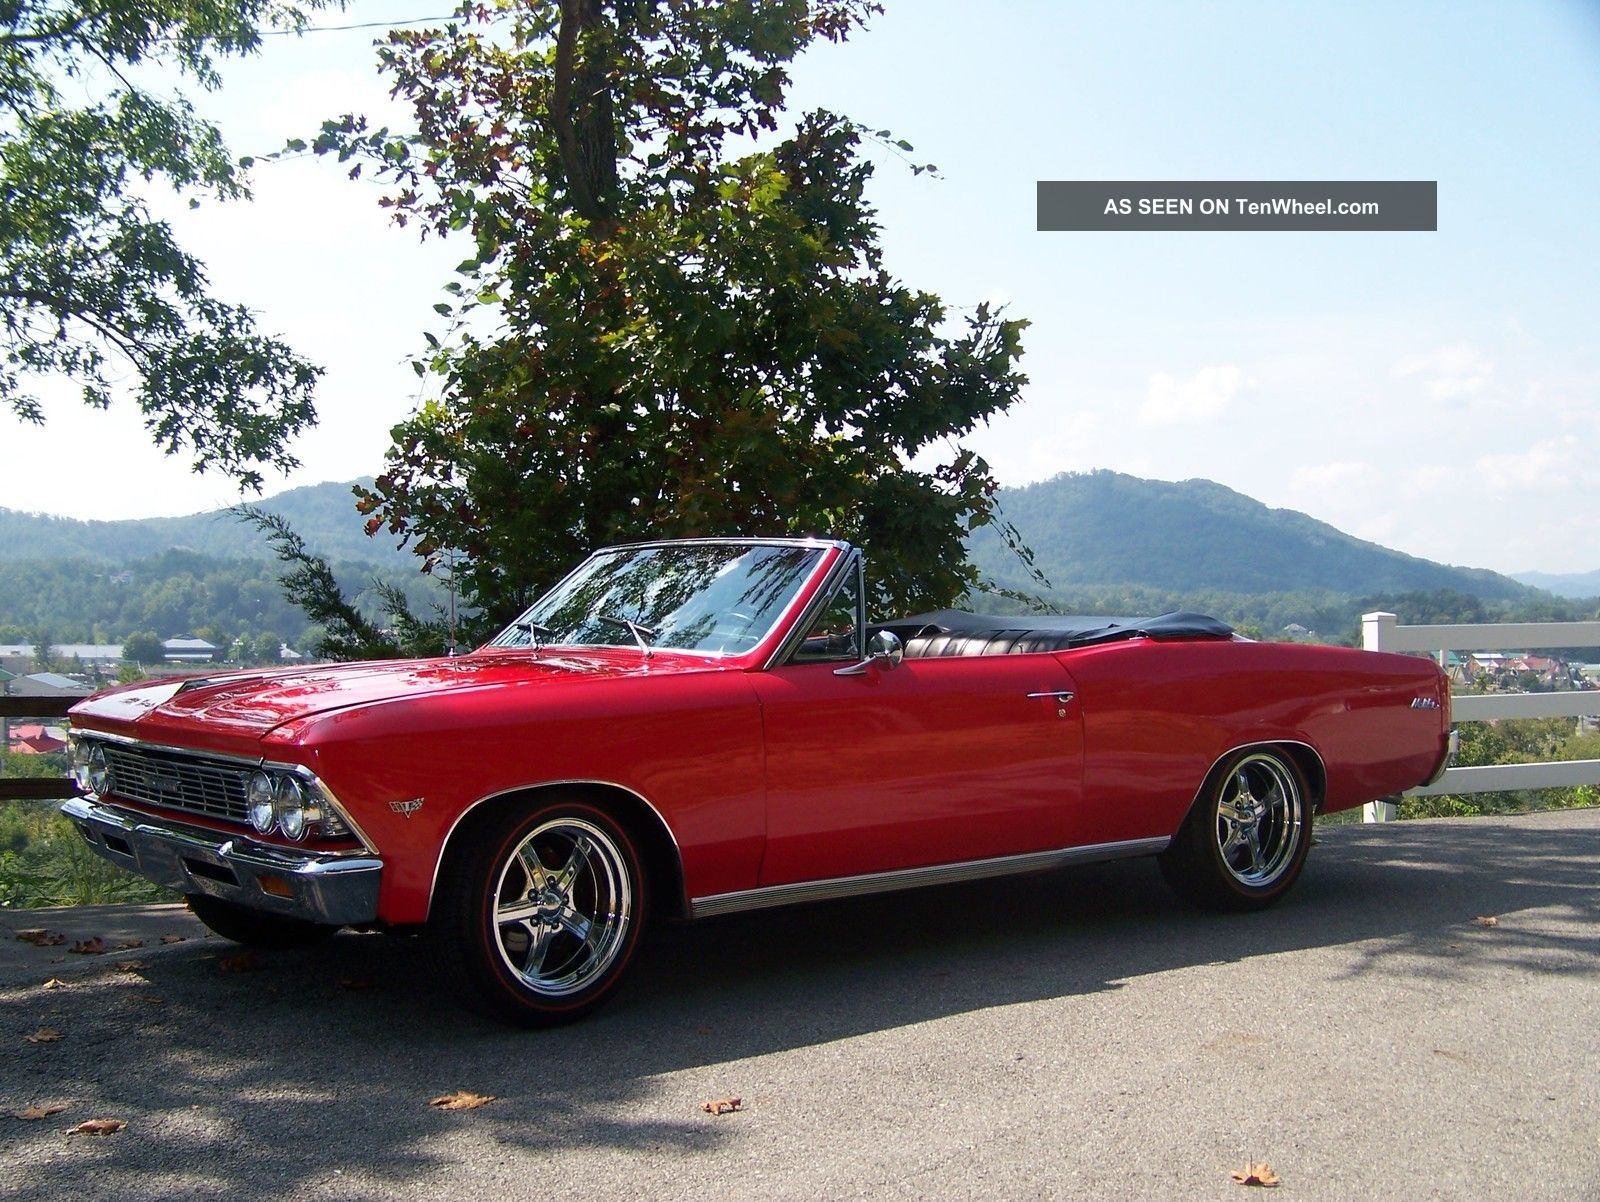 1966 Chevrolet Malibu Convertible 283 V - 8 2 Speed Automatic From The Factory Chevelle photo